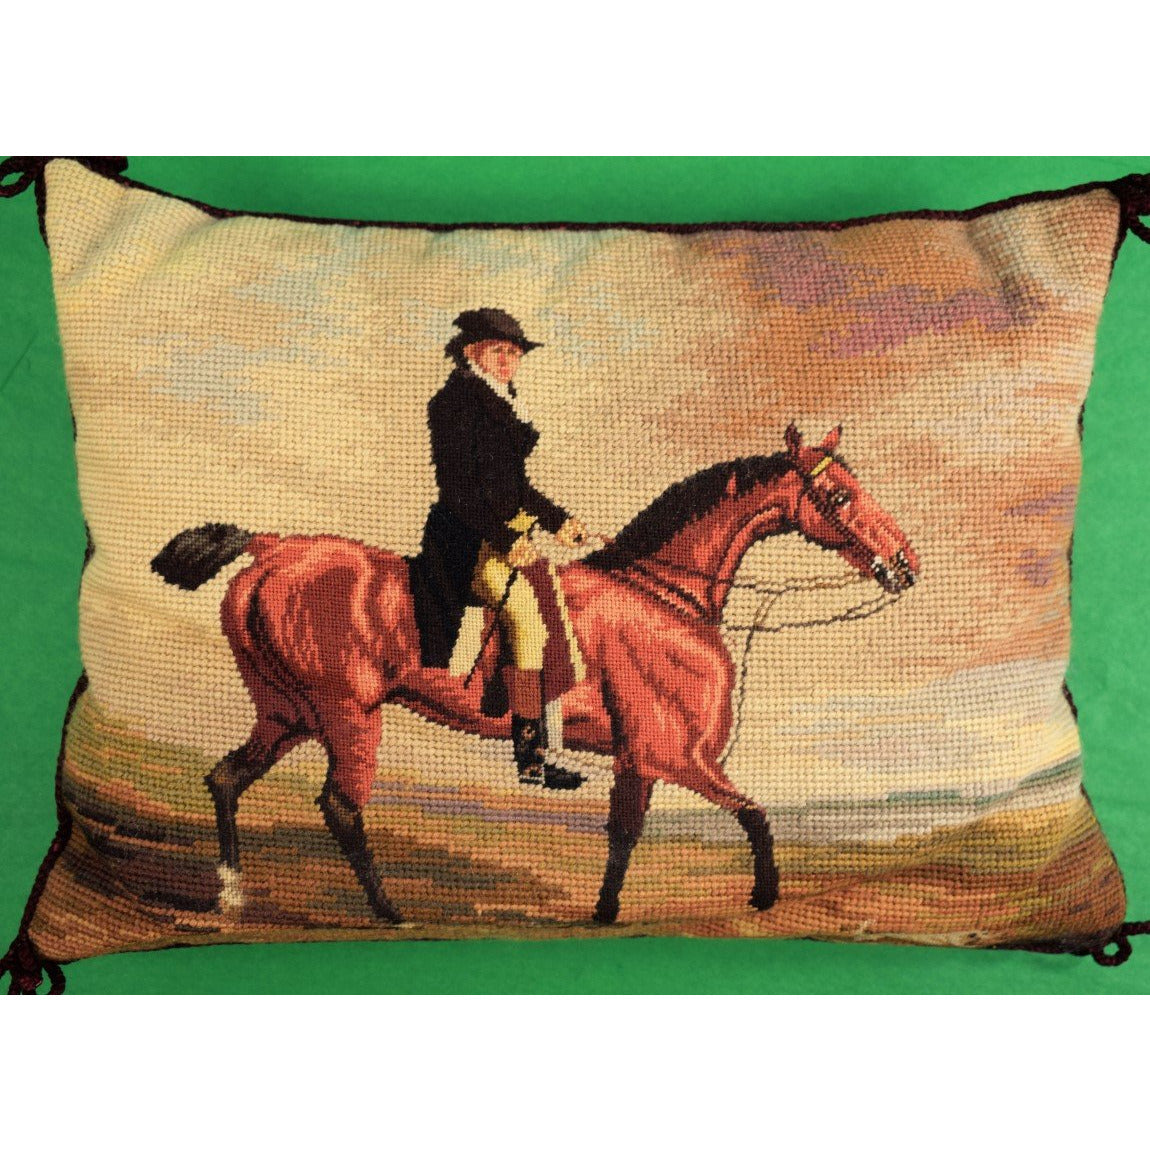 English Huntsman Needlepoint Pillow